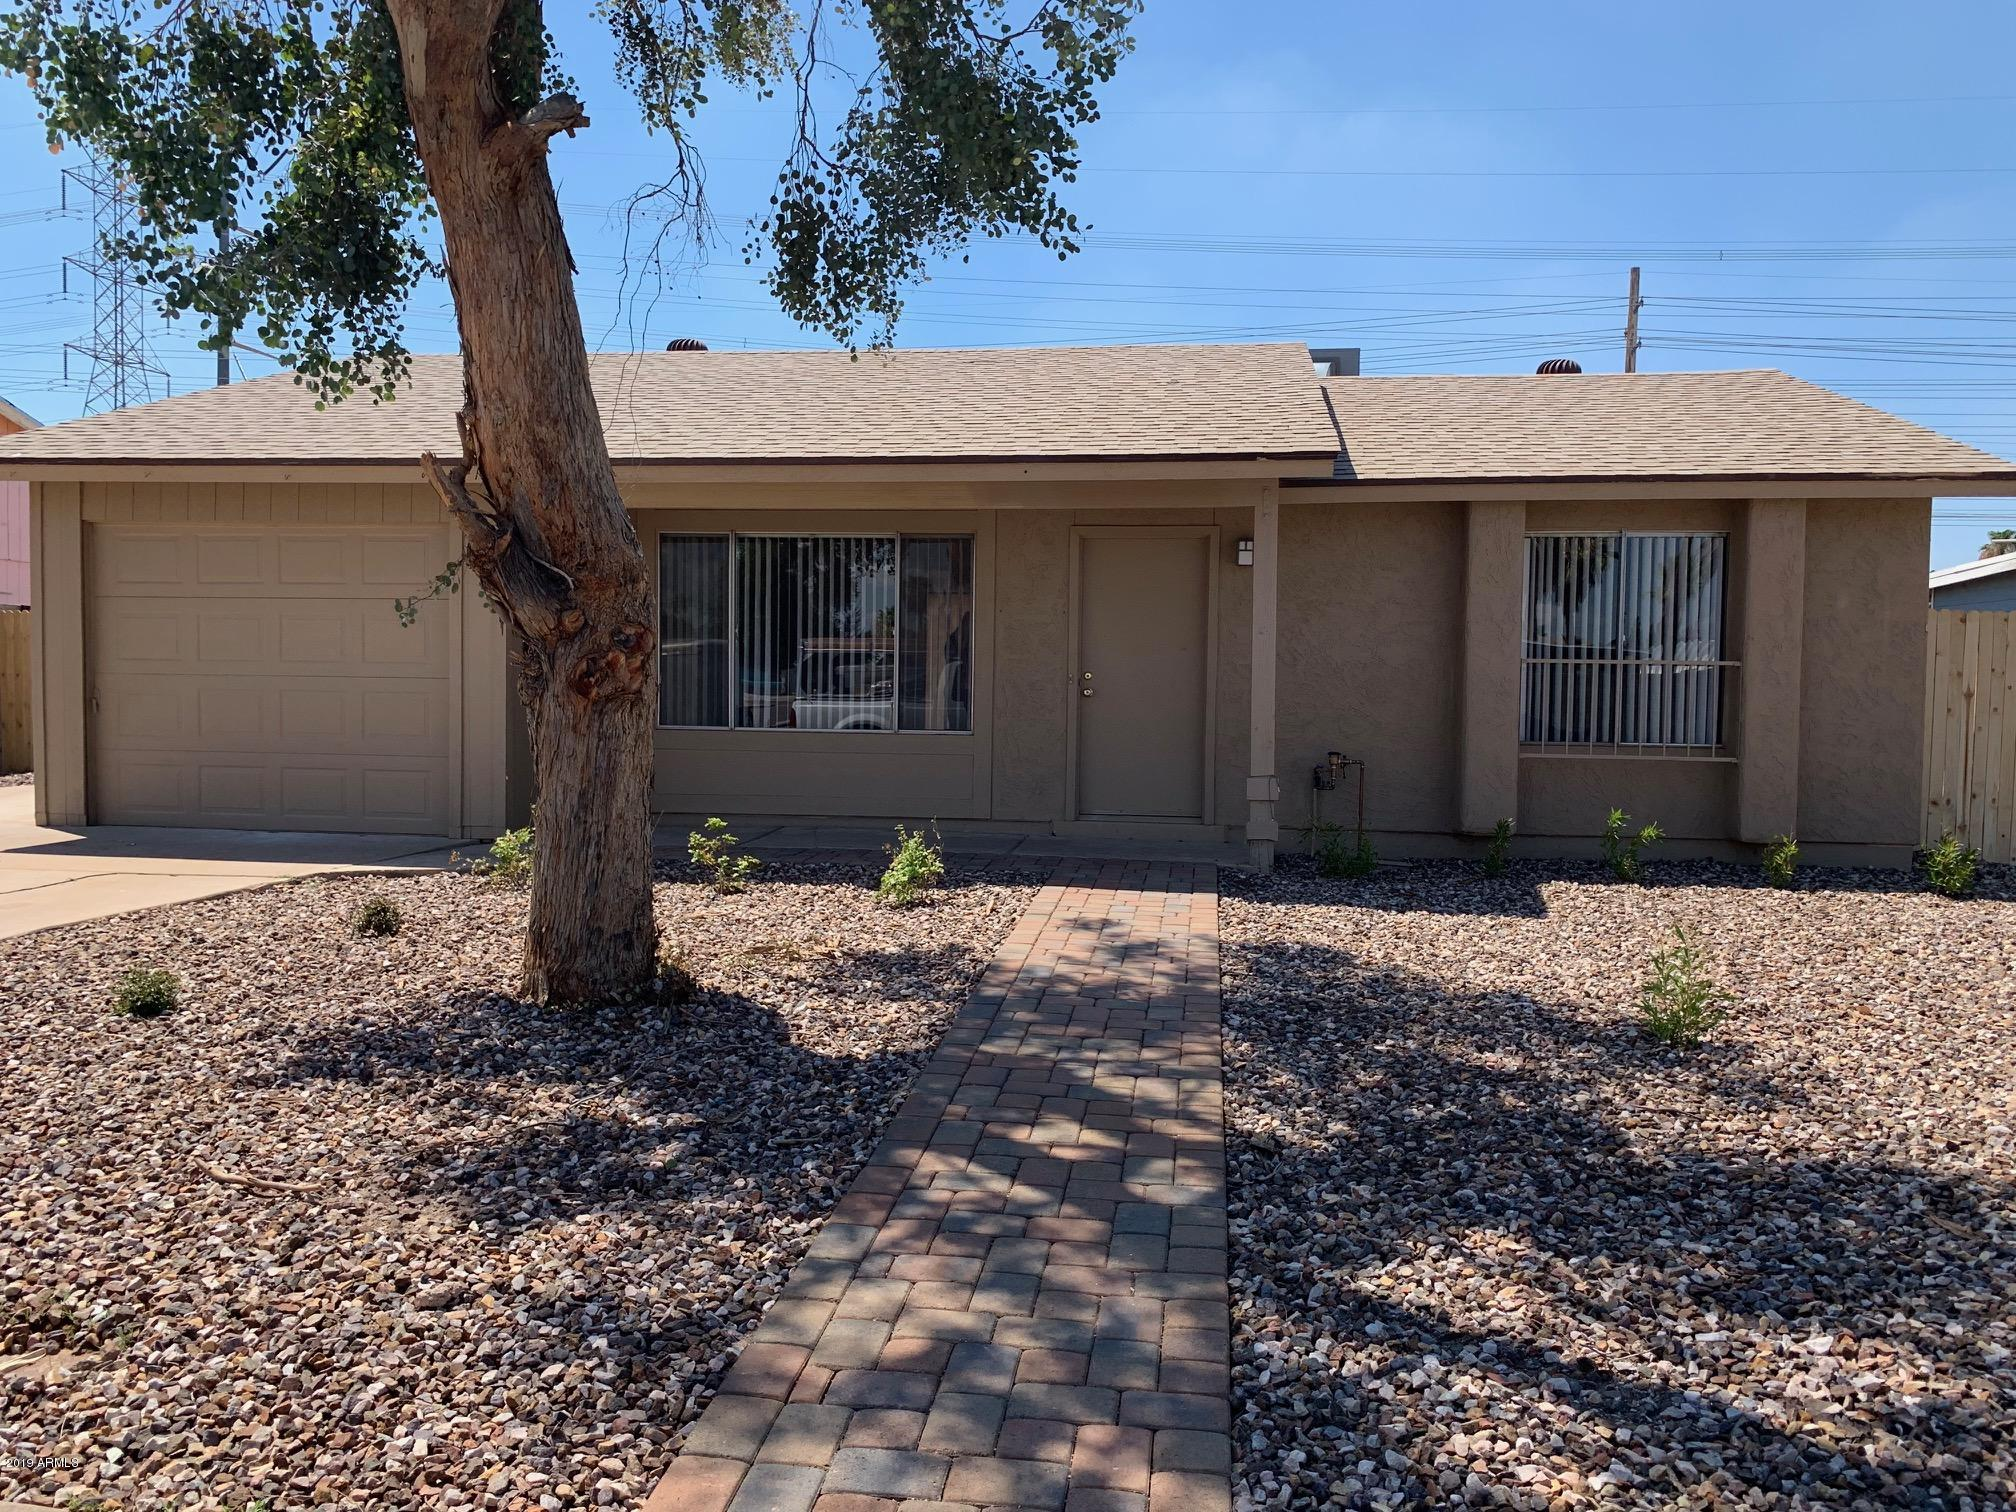 MLS 5960331 2207 W PERALTA Avenue, Mesa, AZ 85202 Mesa Homes for Rent